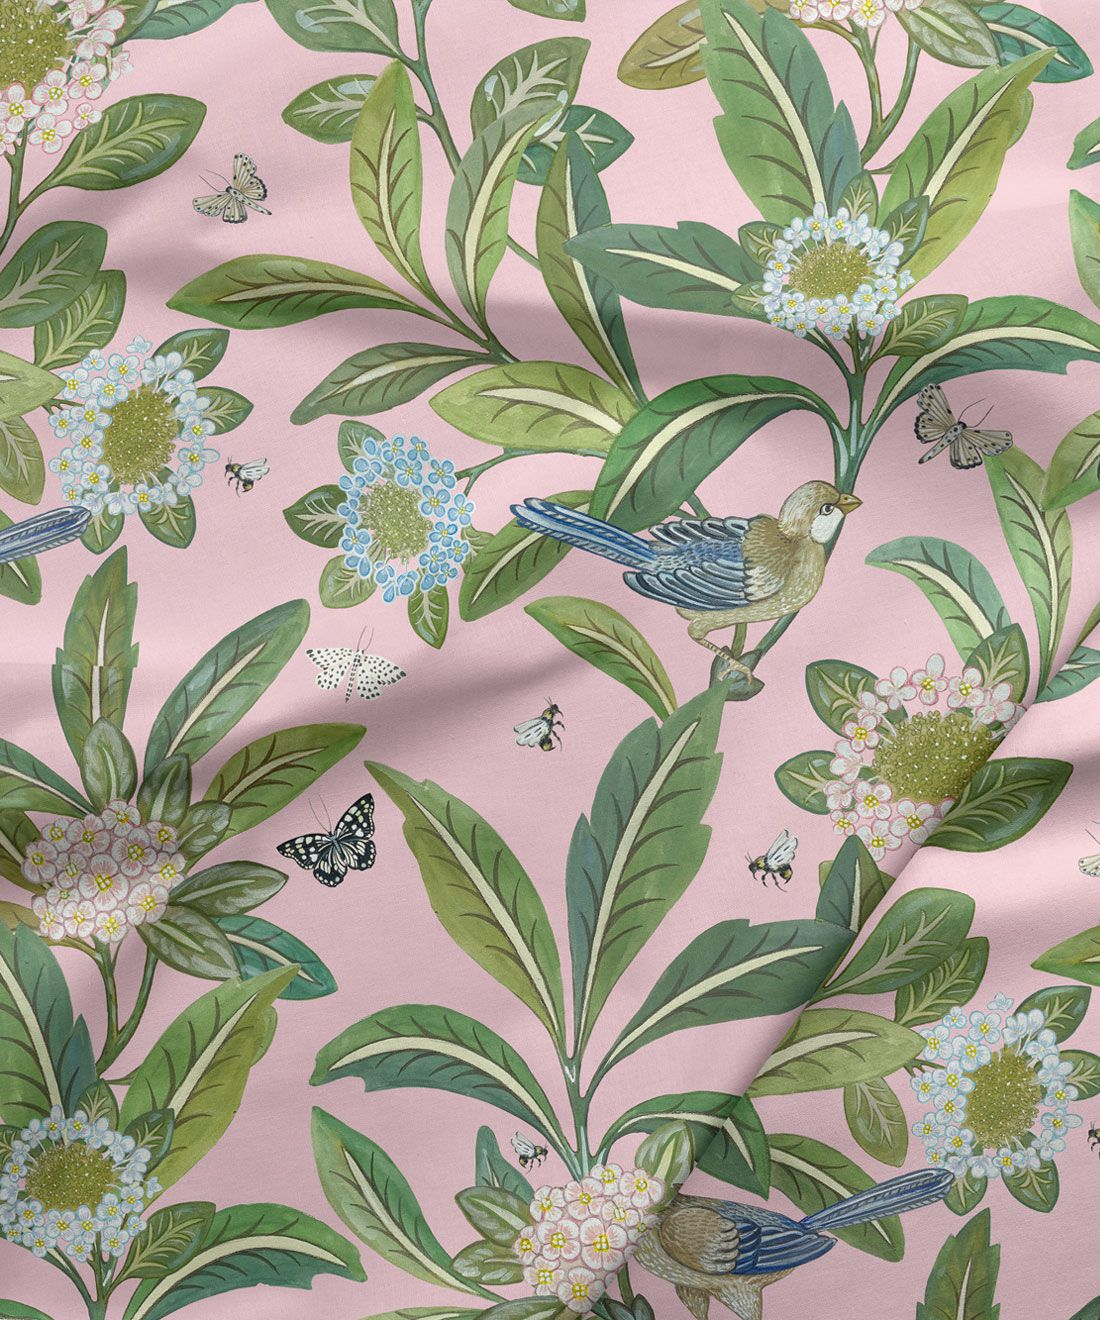 Summer Garden Fabric • Bethany Linz • Bird and Plant Fabric • Pink Upholstery Fabric